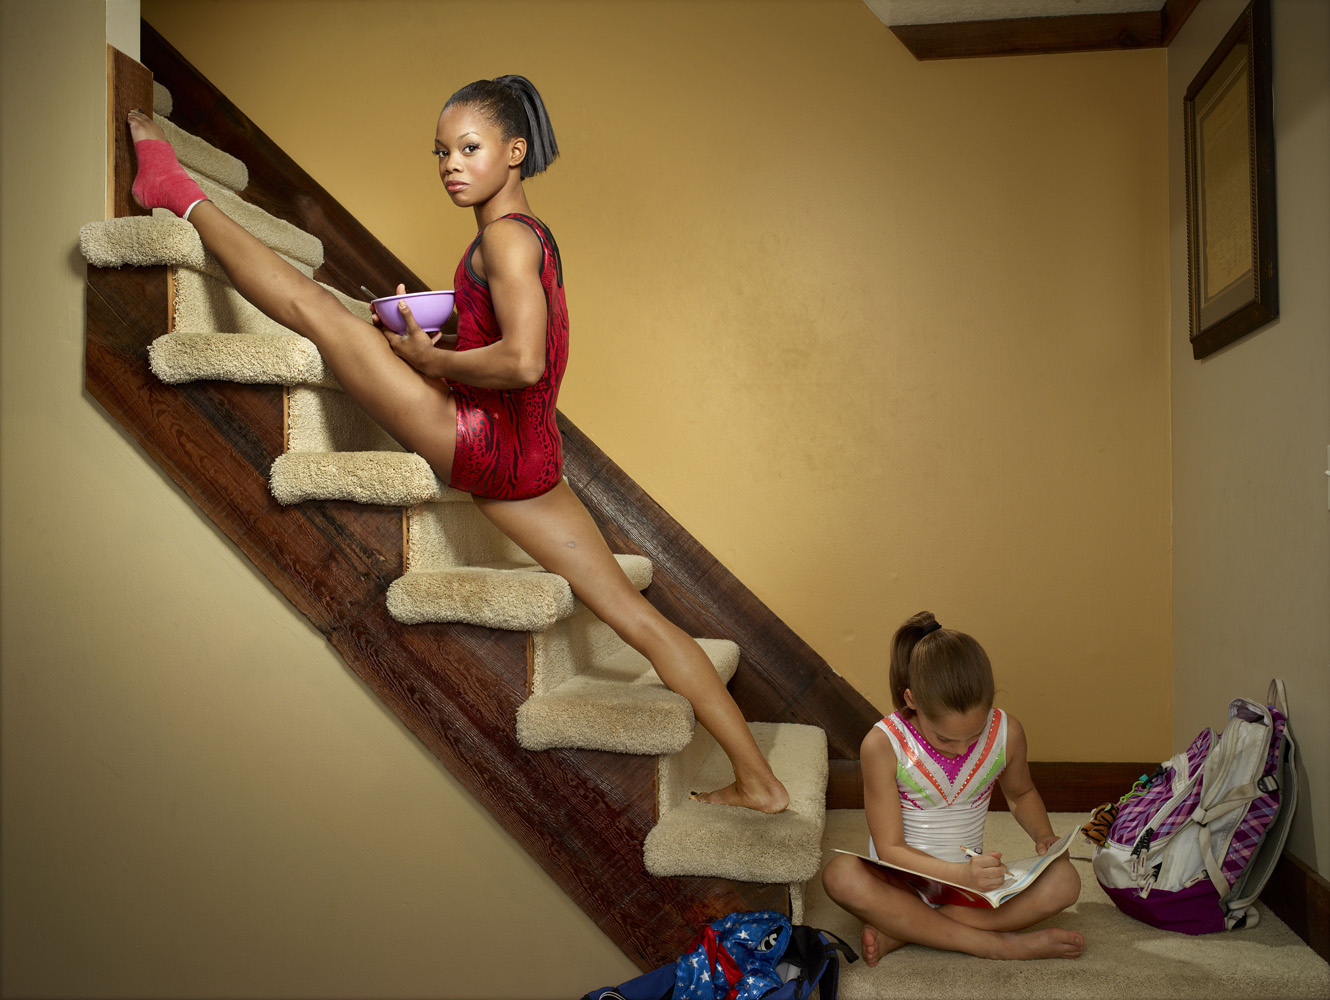 Gabby Douglas, Olympic Athlete, Gymnastics. From  Flip Artist  in TIME's 2012 Olympics Special Issue, July 30, 2012.